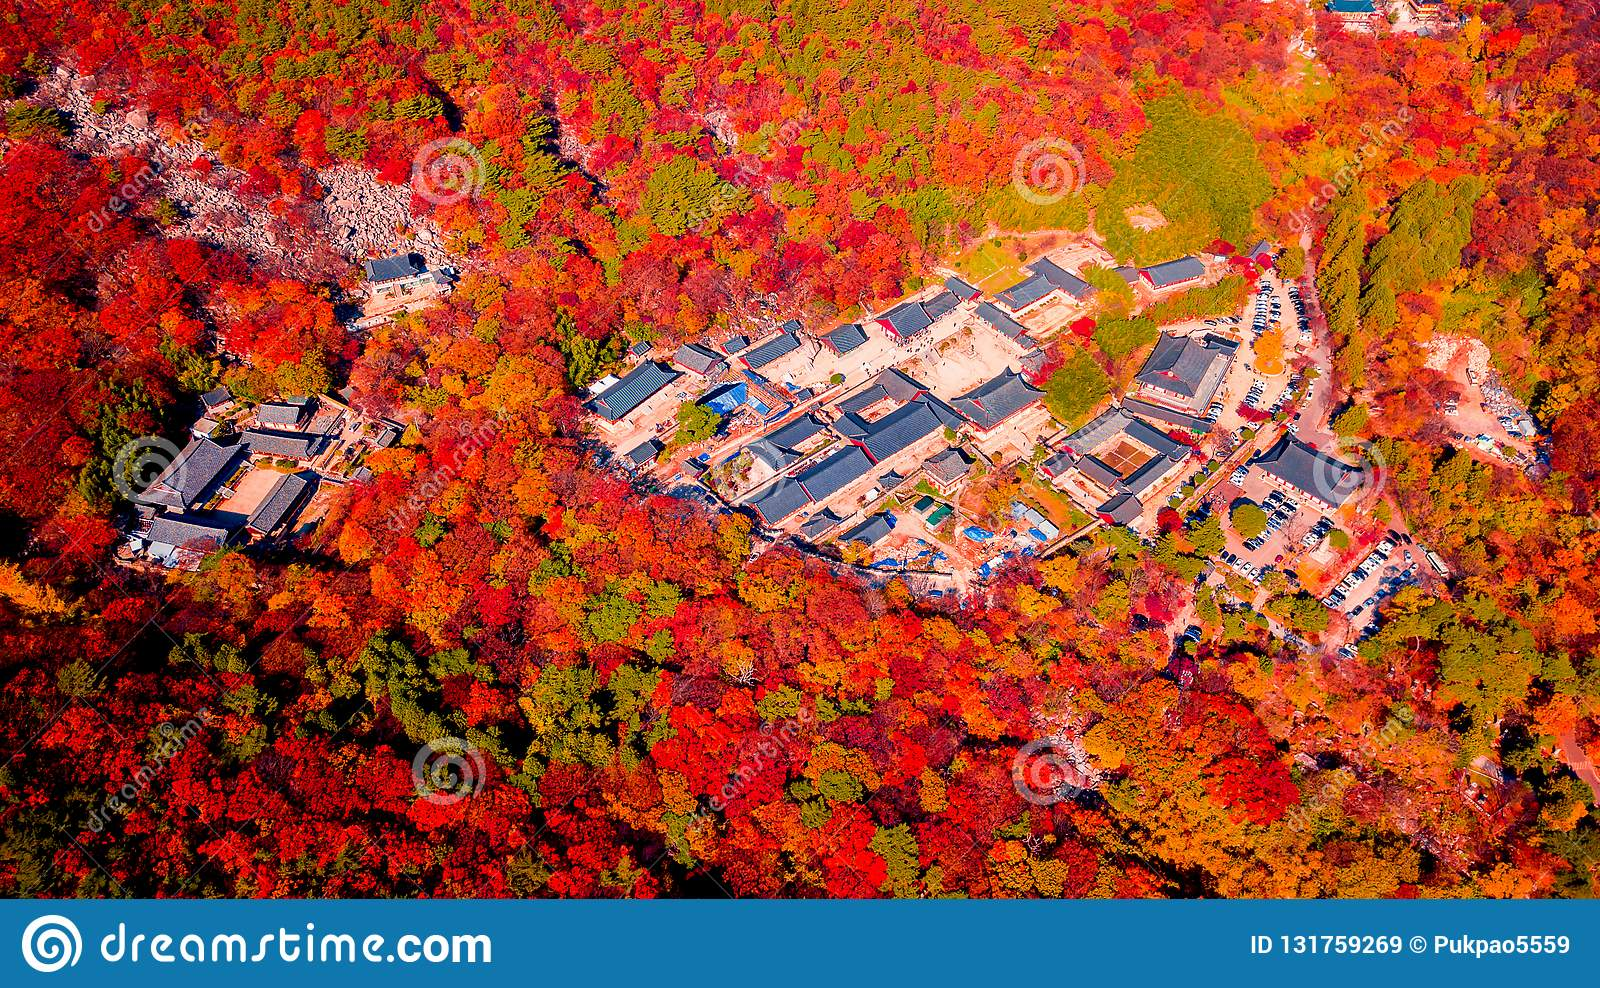 Aerial view of Beomeosa temple in Busan South korea.Image consists of temple located between the mountain covered with colorful